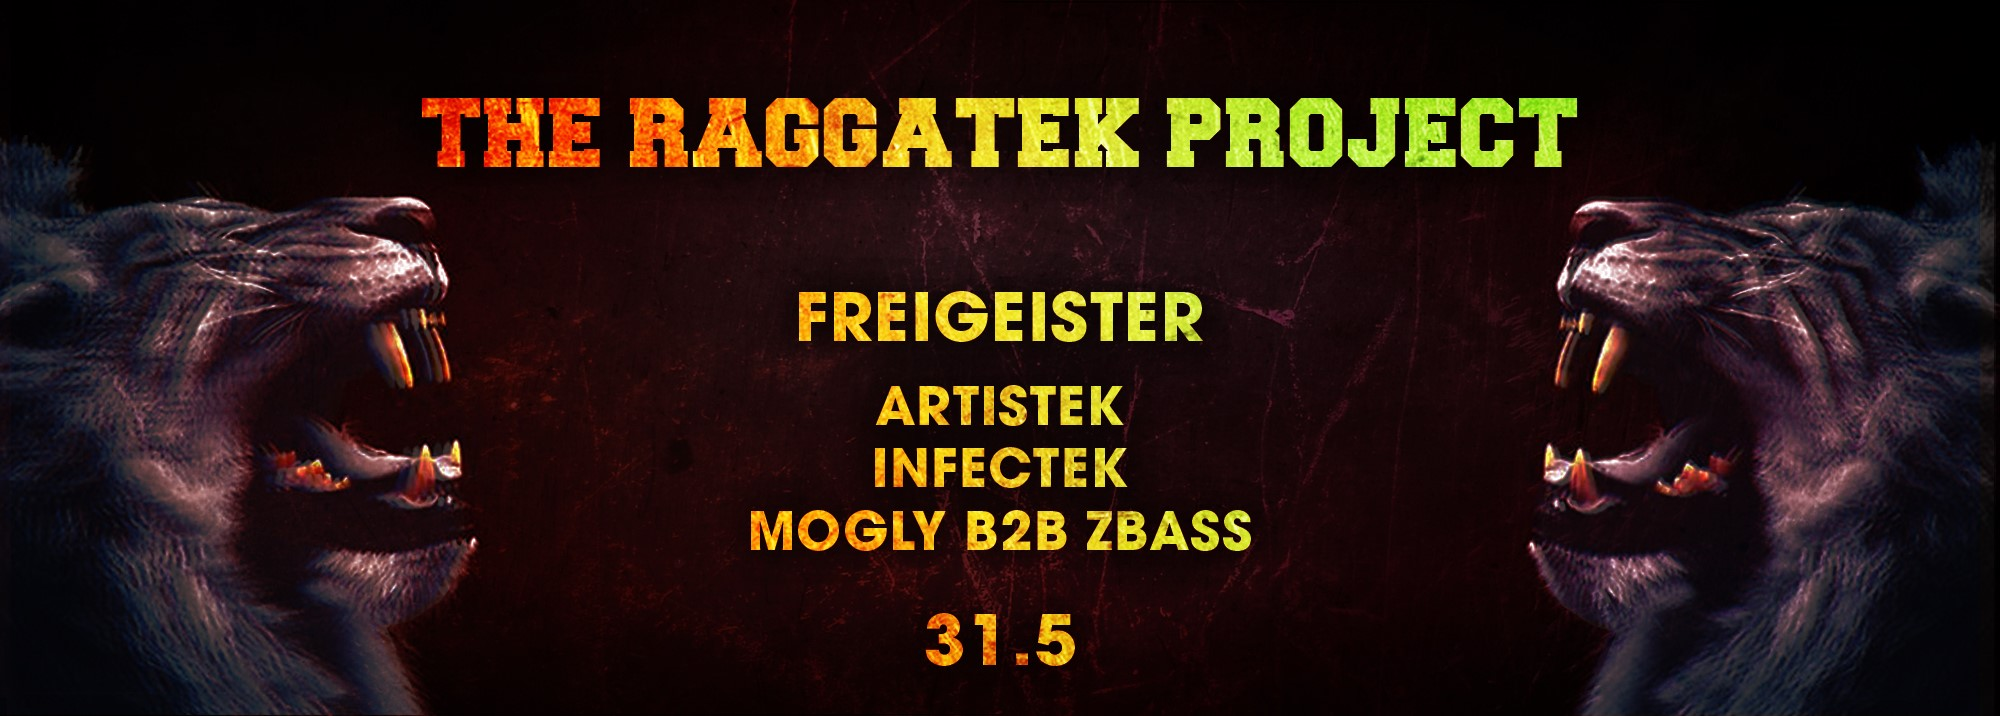 The Raggatek Project